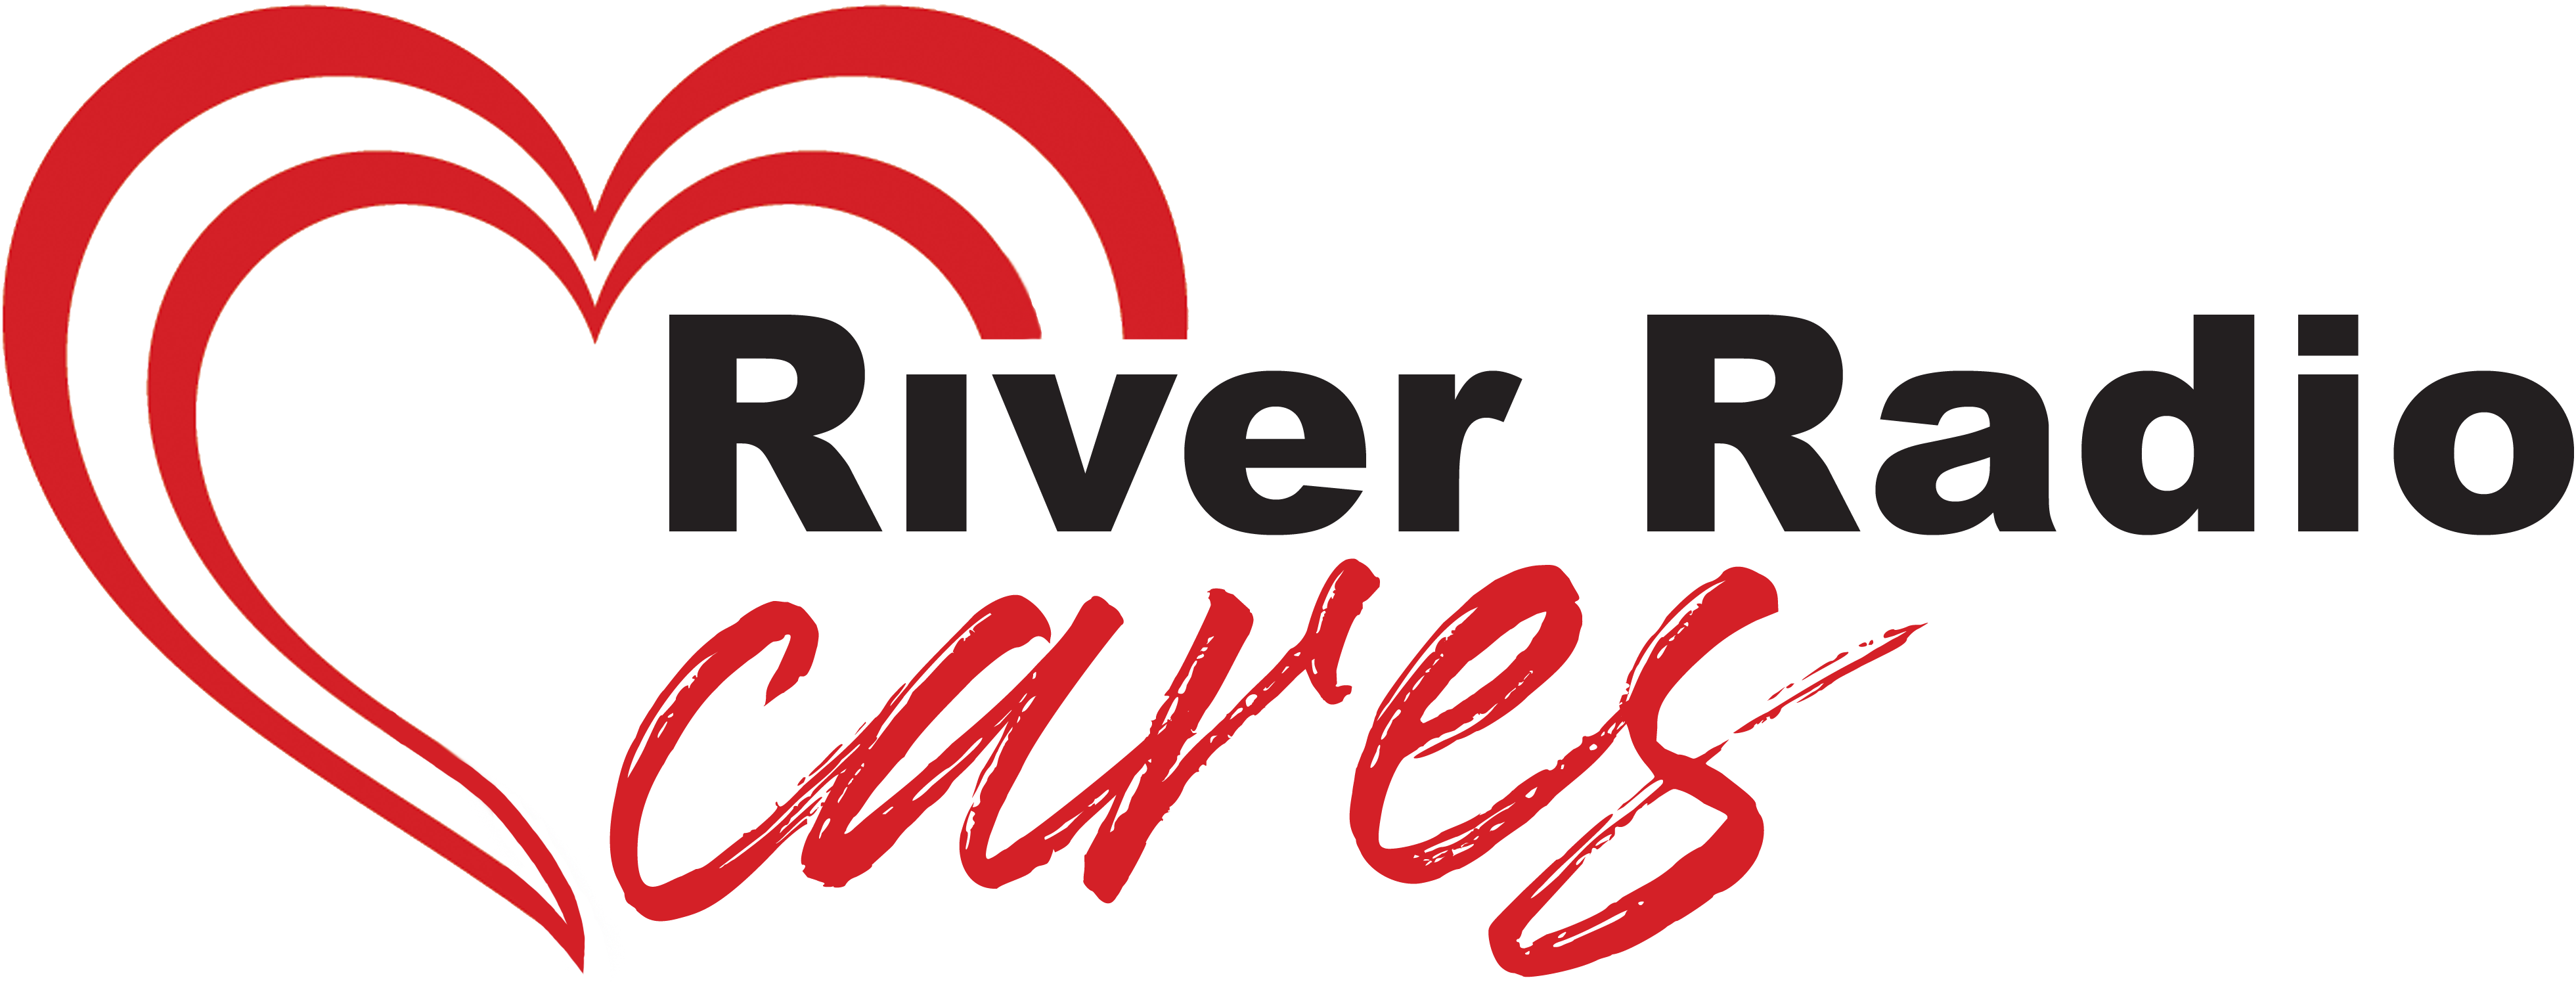 River Radio Cares